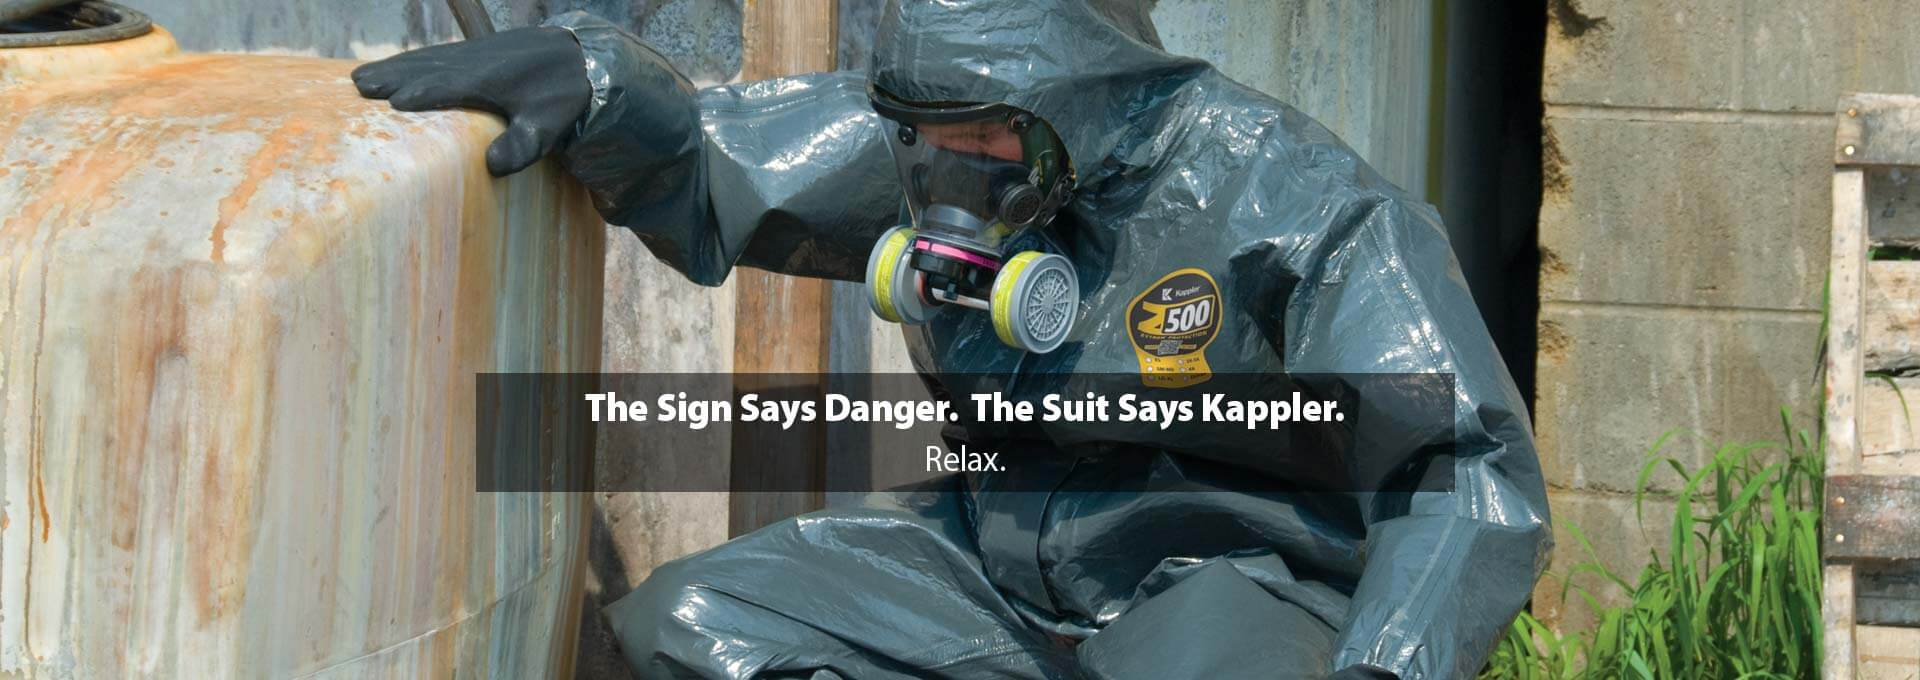 The Sign Says Danger. The Suit Says Kappler. Relax